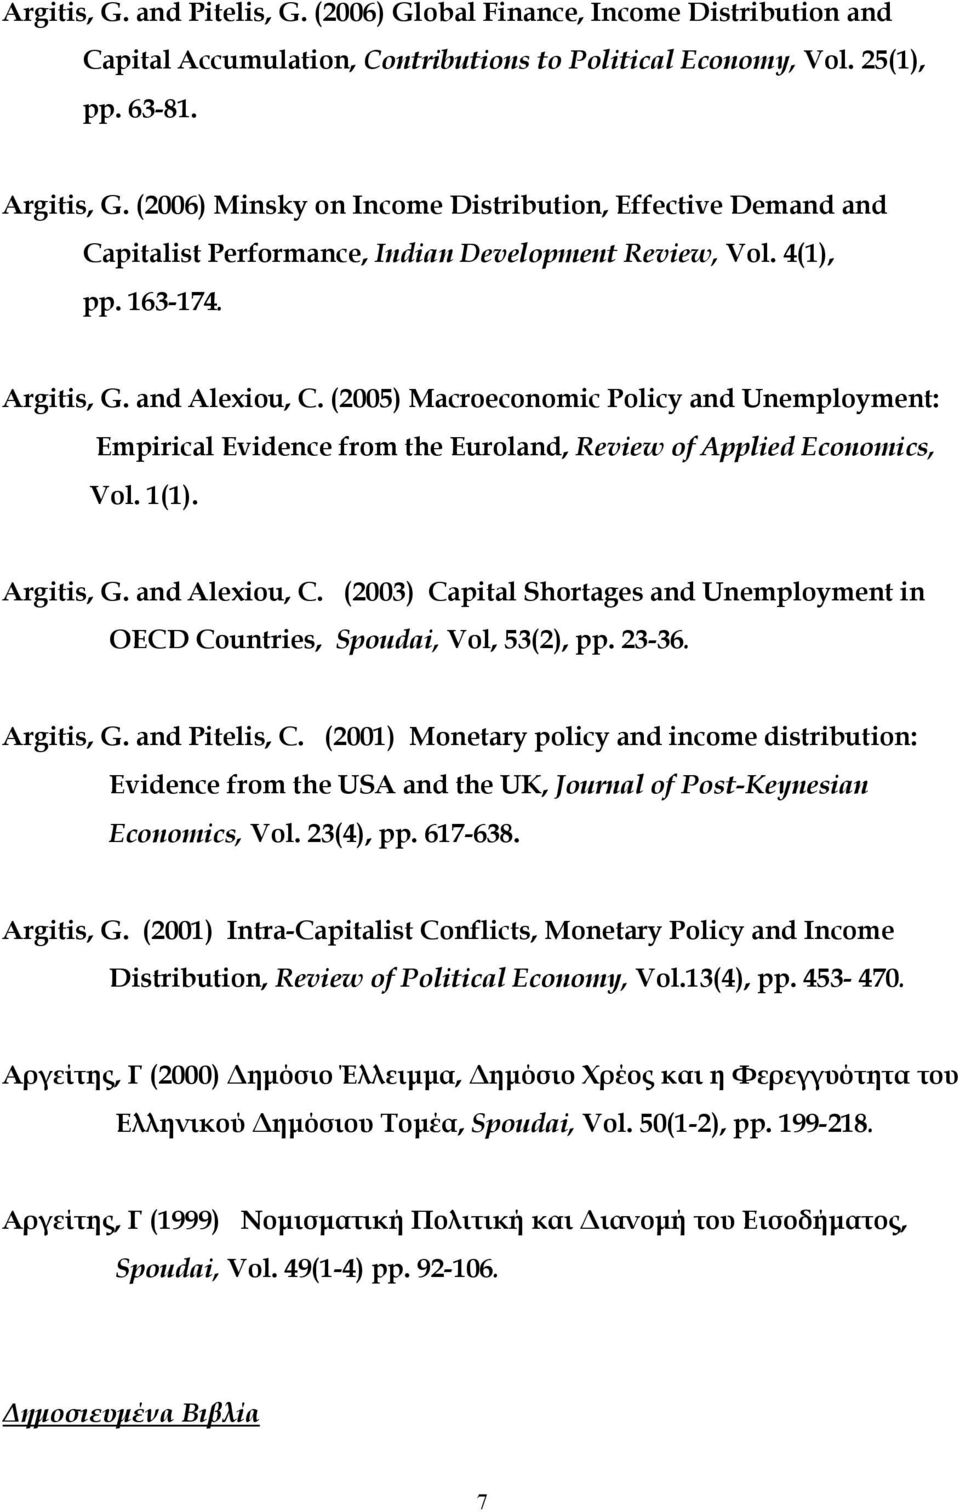 (2005) Macroeconomic Policy and Unemployment: Empirical Evidence from the Euroland, Review of Applied Economics, Vol. 1(1). Argitis, G. and Alexiou, C.